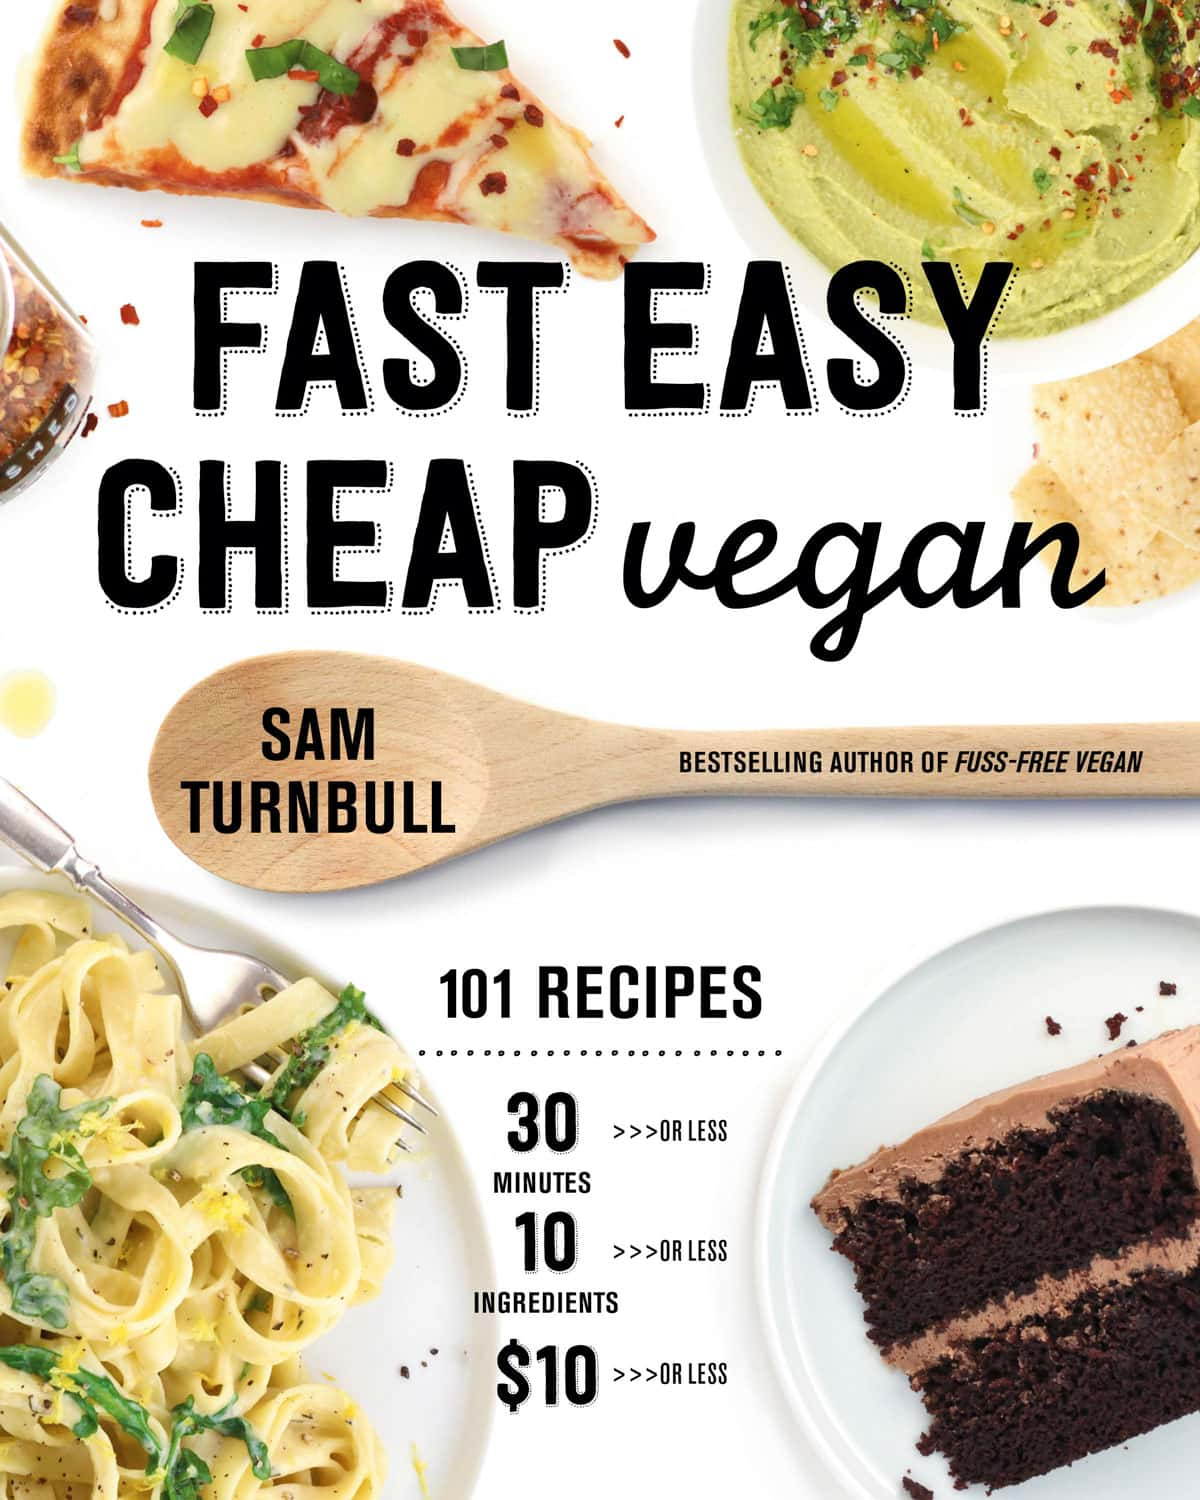 Fast Easy Cheap Vegan! 101 Recipes that all take 30 minutes or less to prepare, require 10 ingredients or less, and cost $10 or less. New vegan cookbook by the bestselling author Sam Turnbull. This is the perfect vegan cookbook for beginners and master cooks alike. Simple enough to make on a busy evening, tasty enough to wow everyone at the table.  Pre-order it today! #itdoesnttastelikechicken #vegan #cookbook